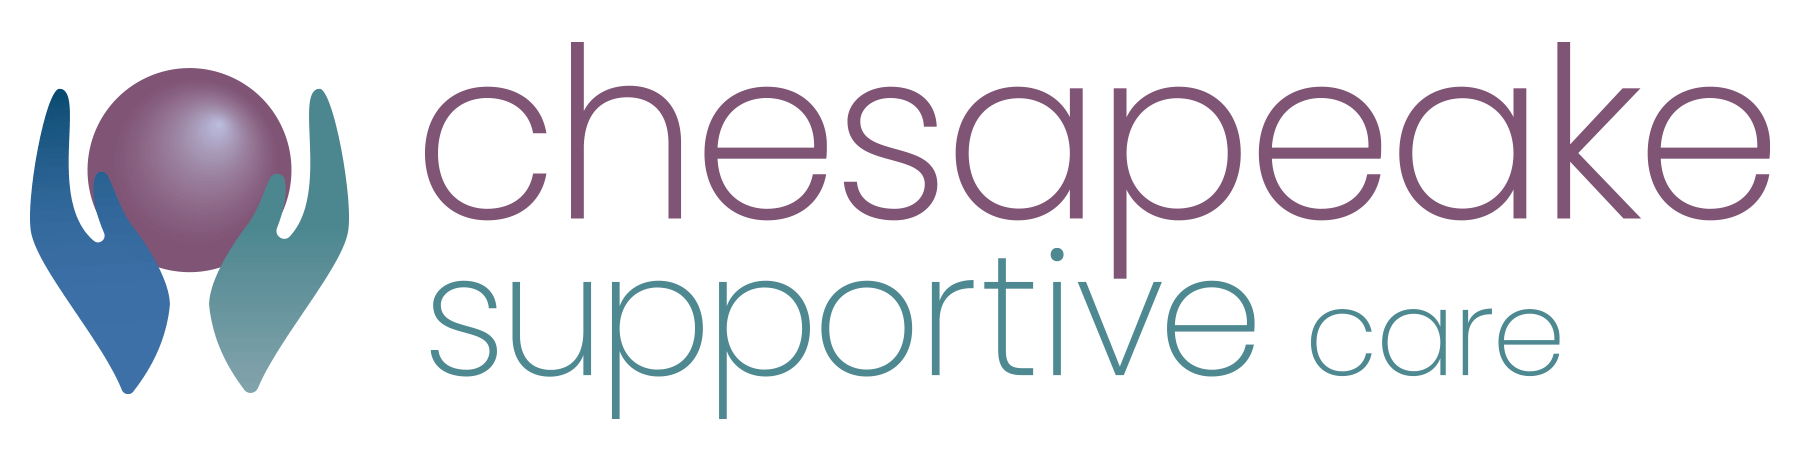 Chesapeake Supportive Care